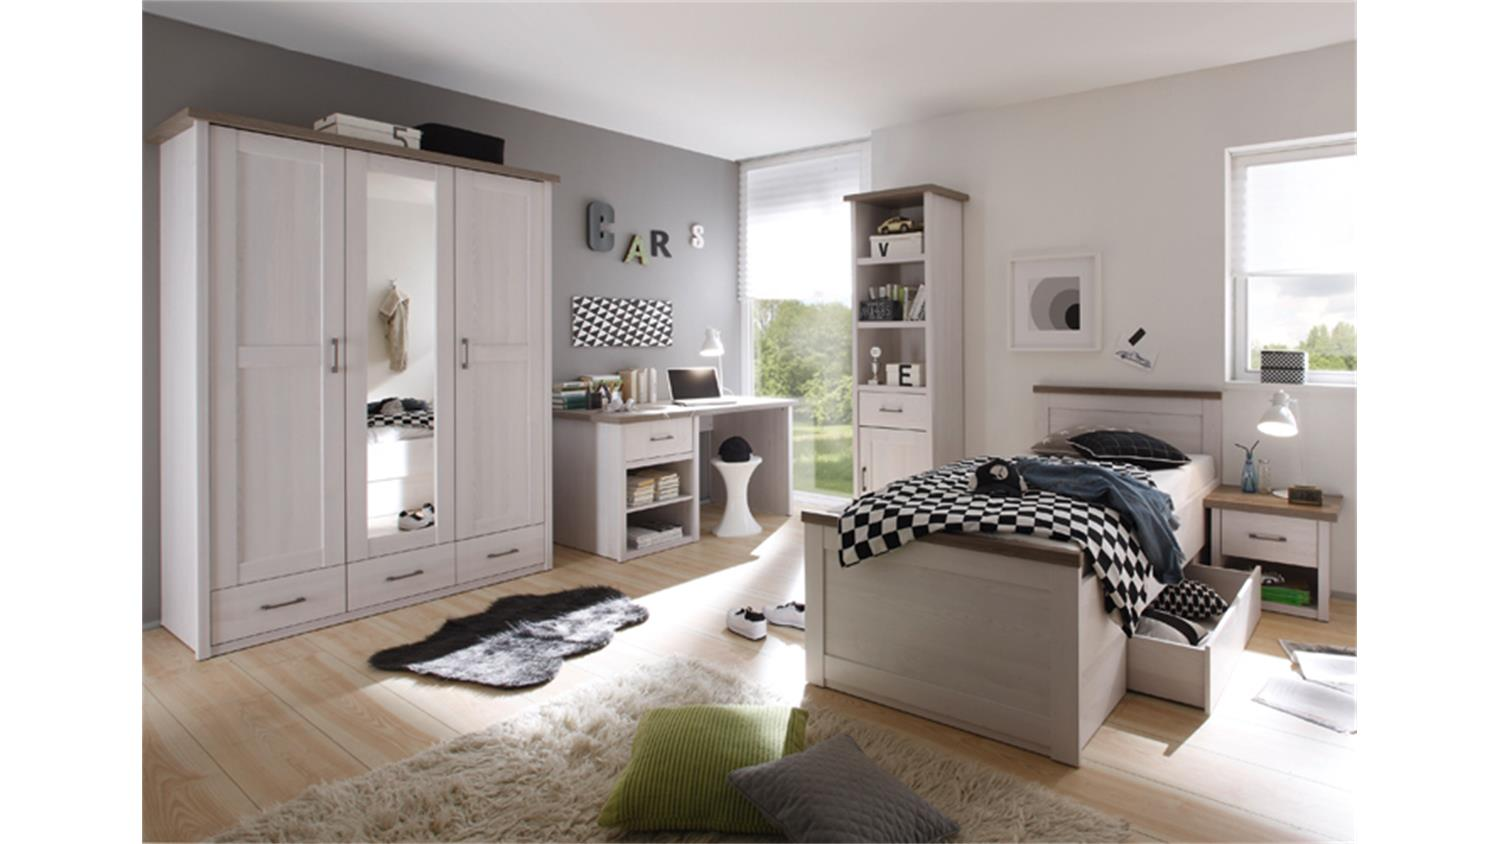 jugendzimmer luca komplettset 1 pinie wei und tr ffel 5 teilig. Black Bedroom Furniture Sets. Home Design Ideas